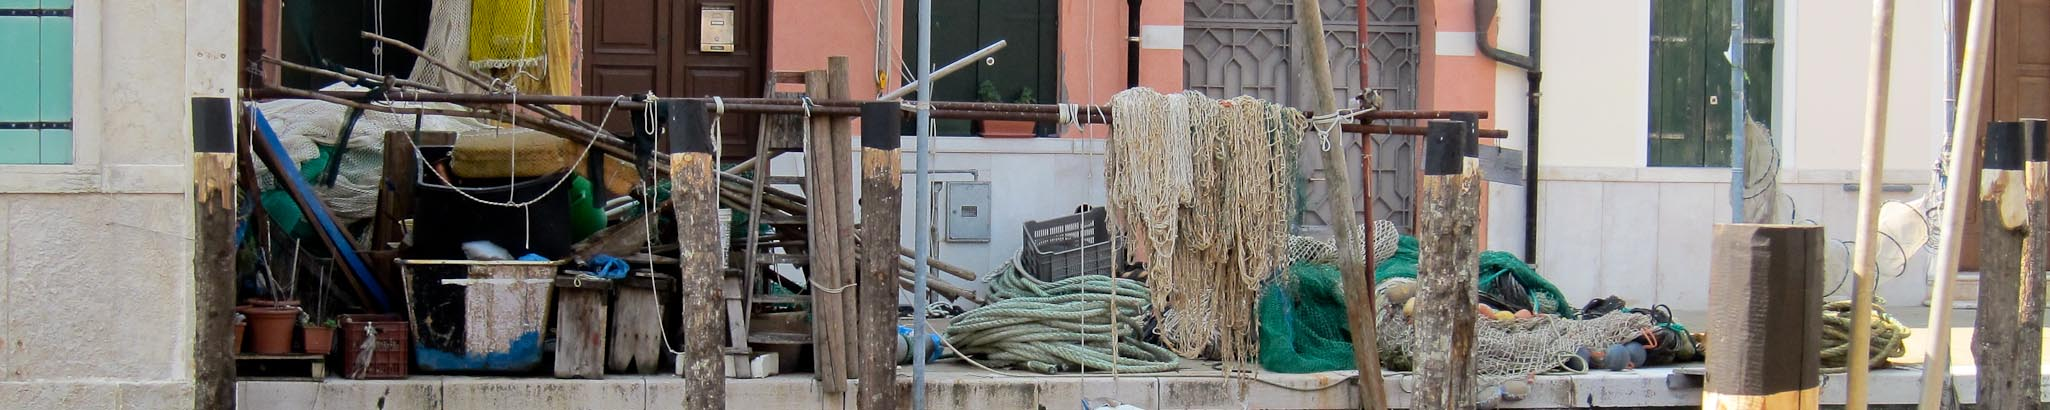 Fishing tackle in Chioggia pantry of Venice